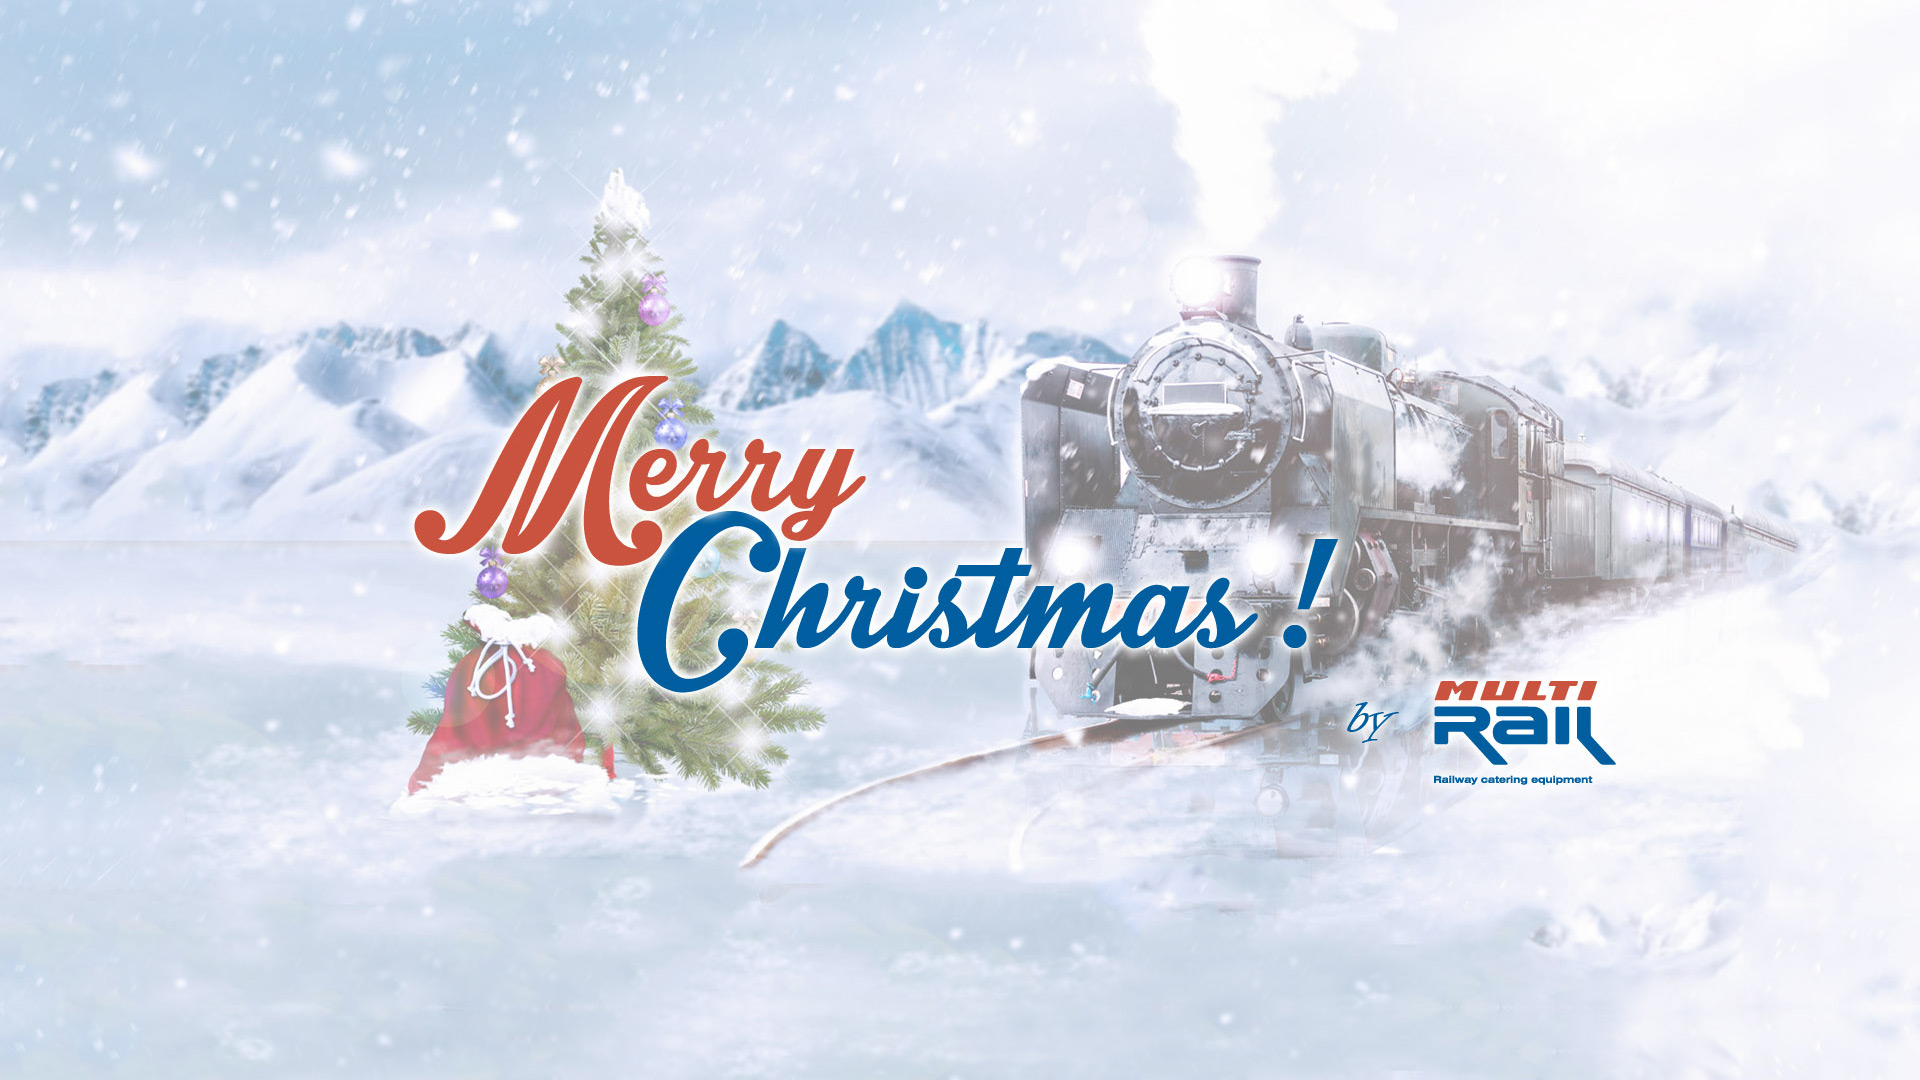 MERRY CHRISTMAS 2019 AND A HAPPY NEW YEAR 2020